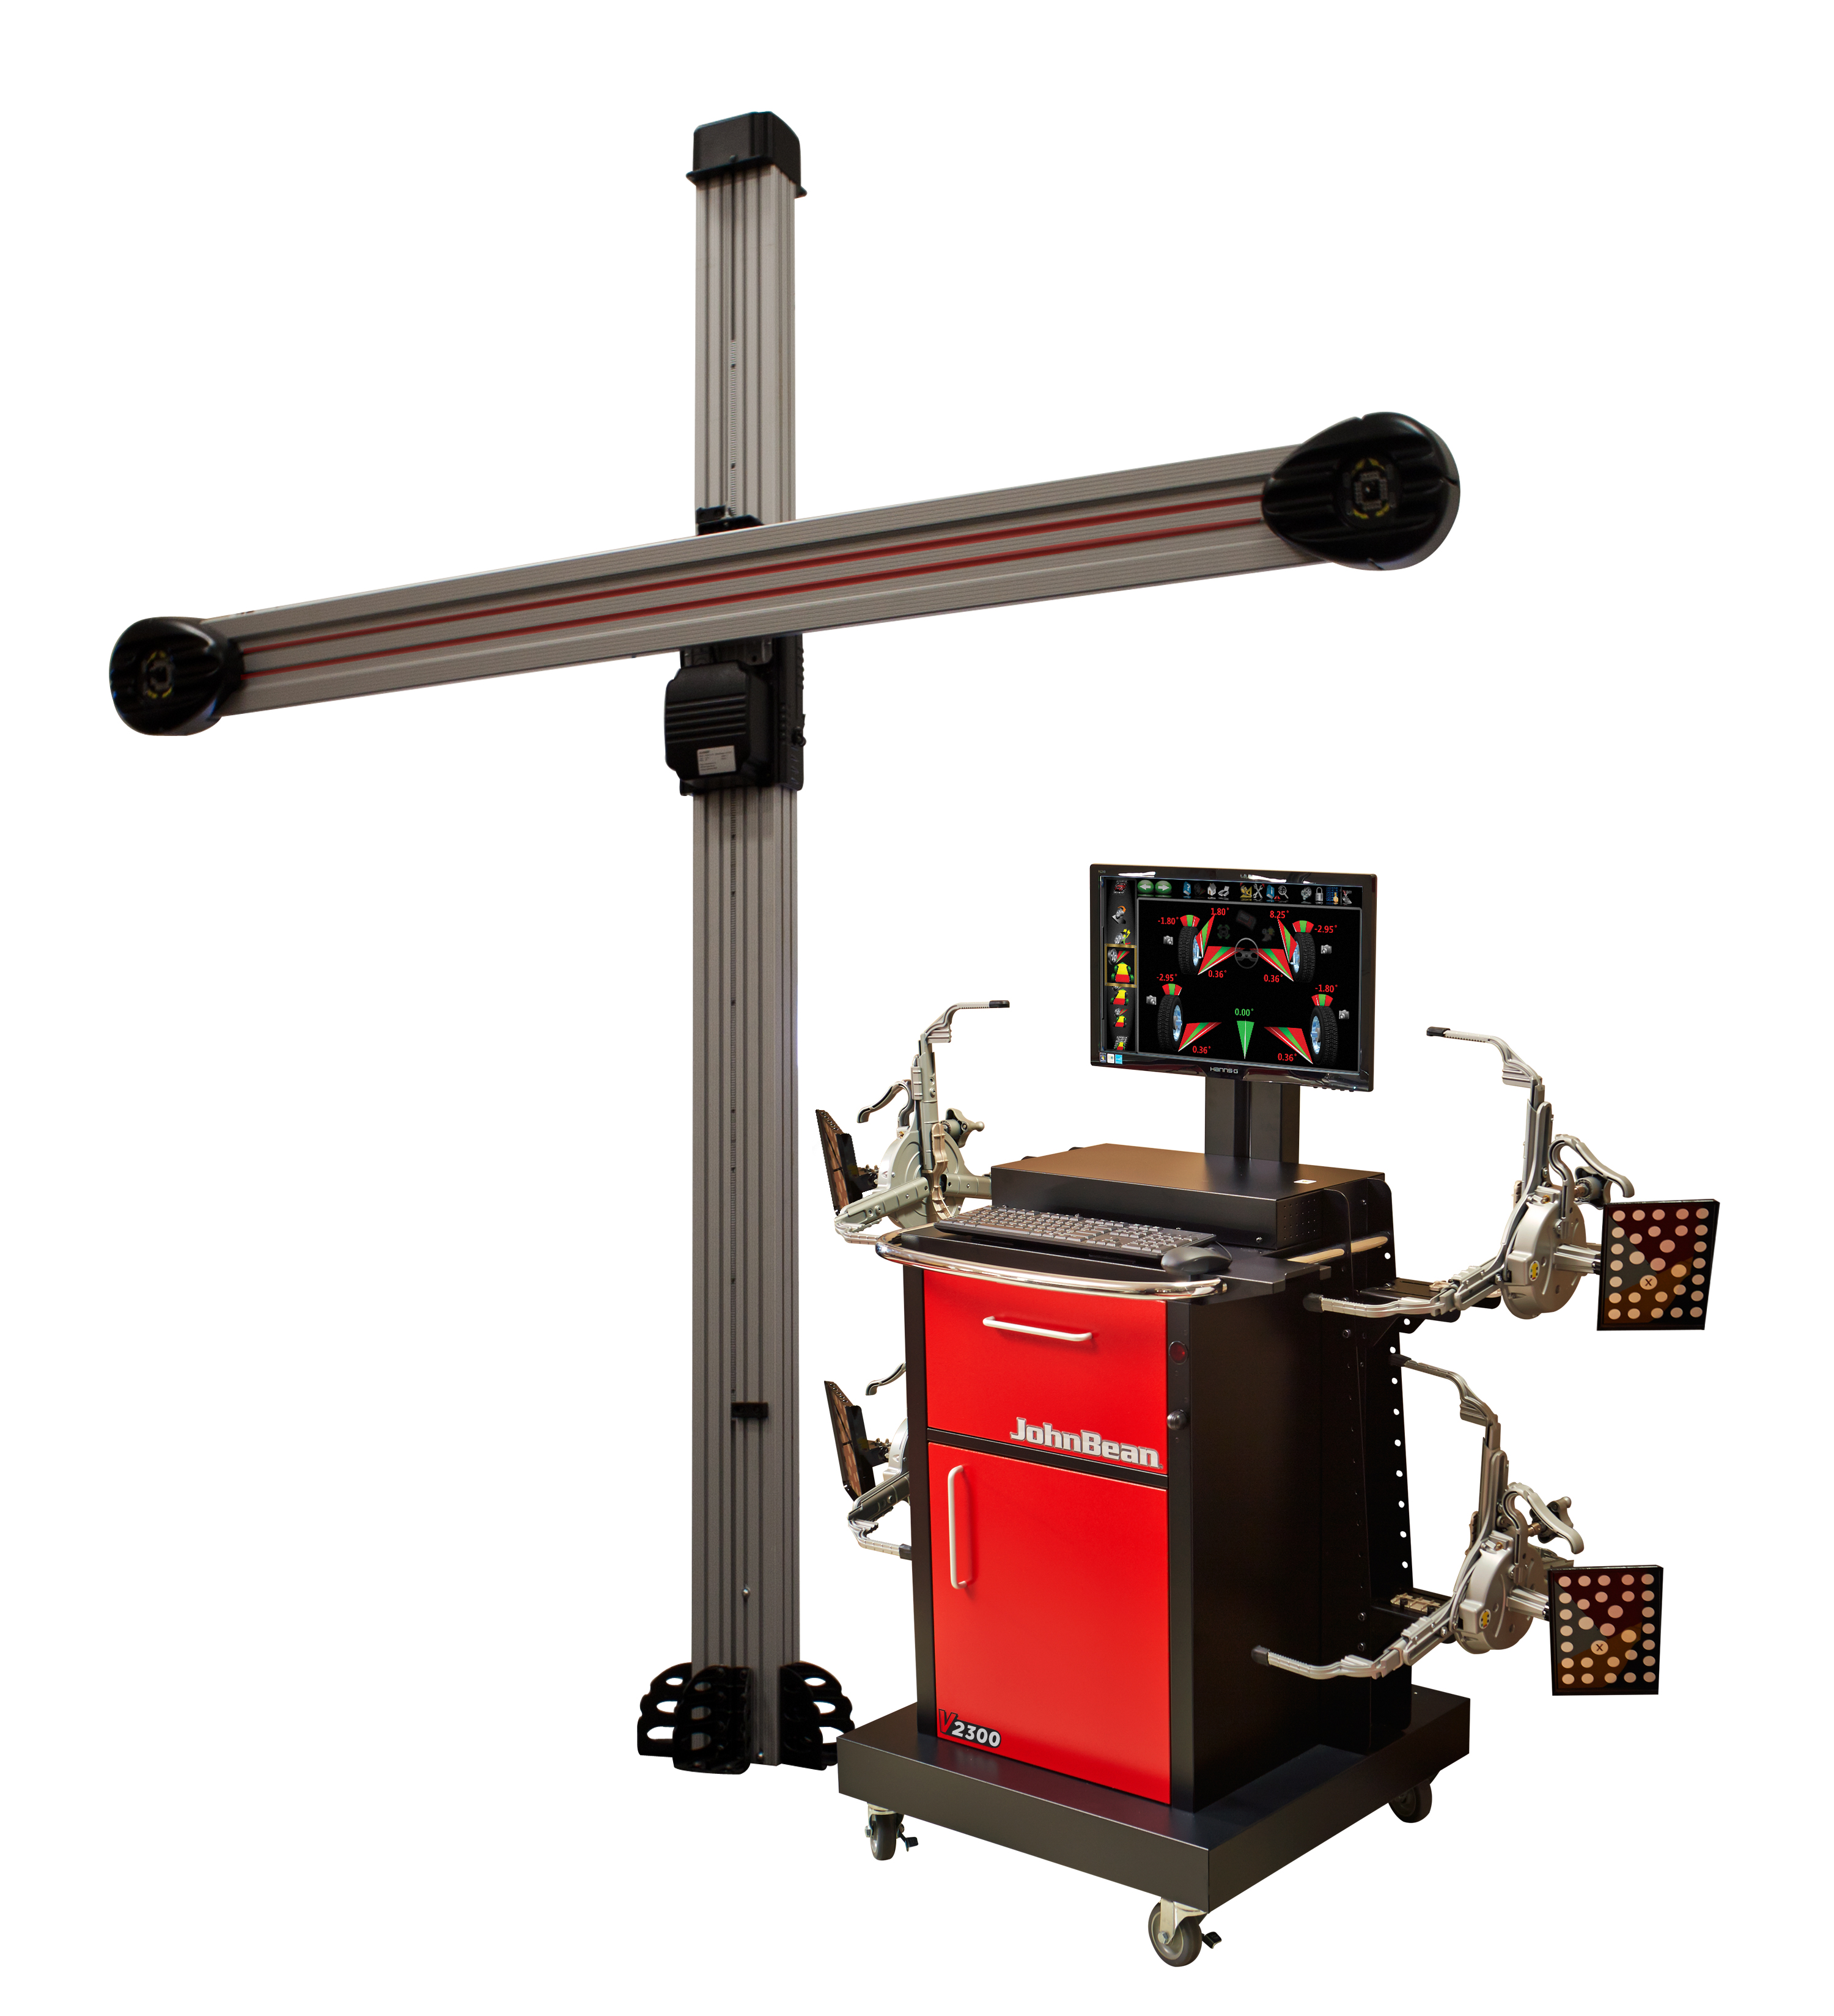 Snap-on introduces V2300 alignment system